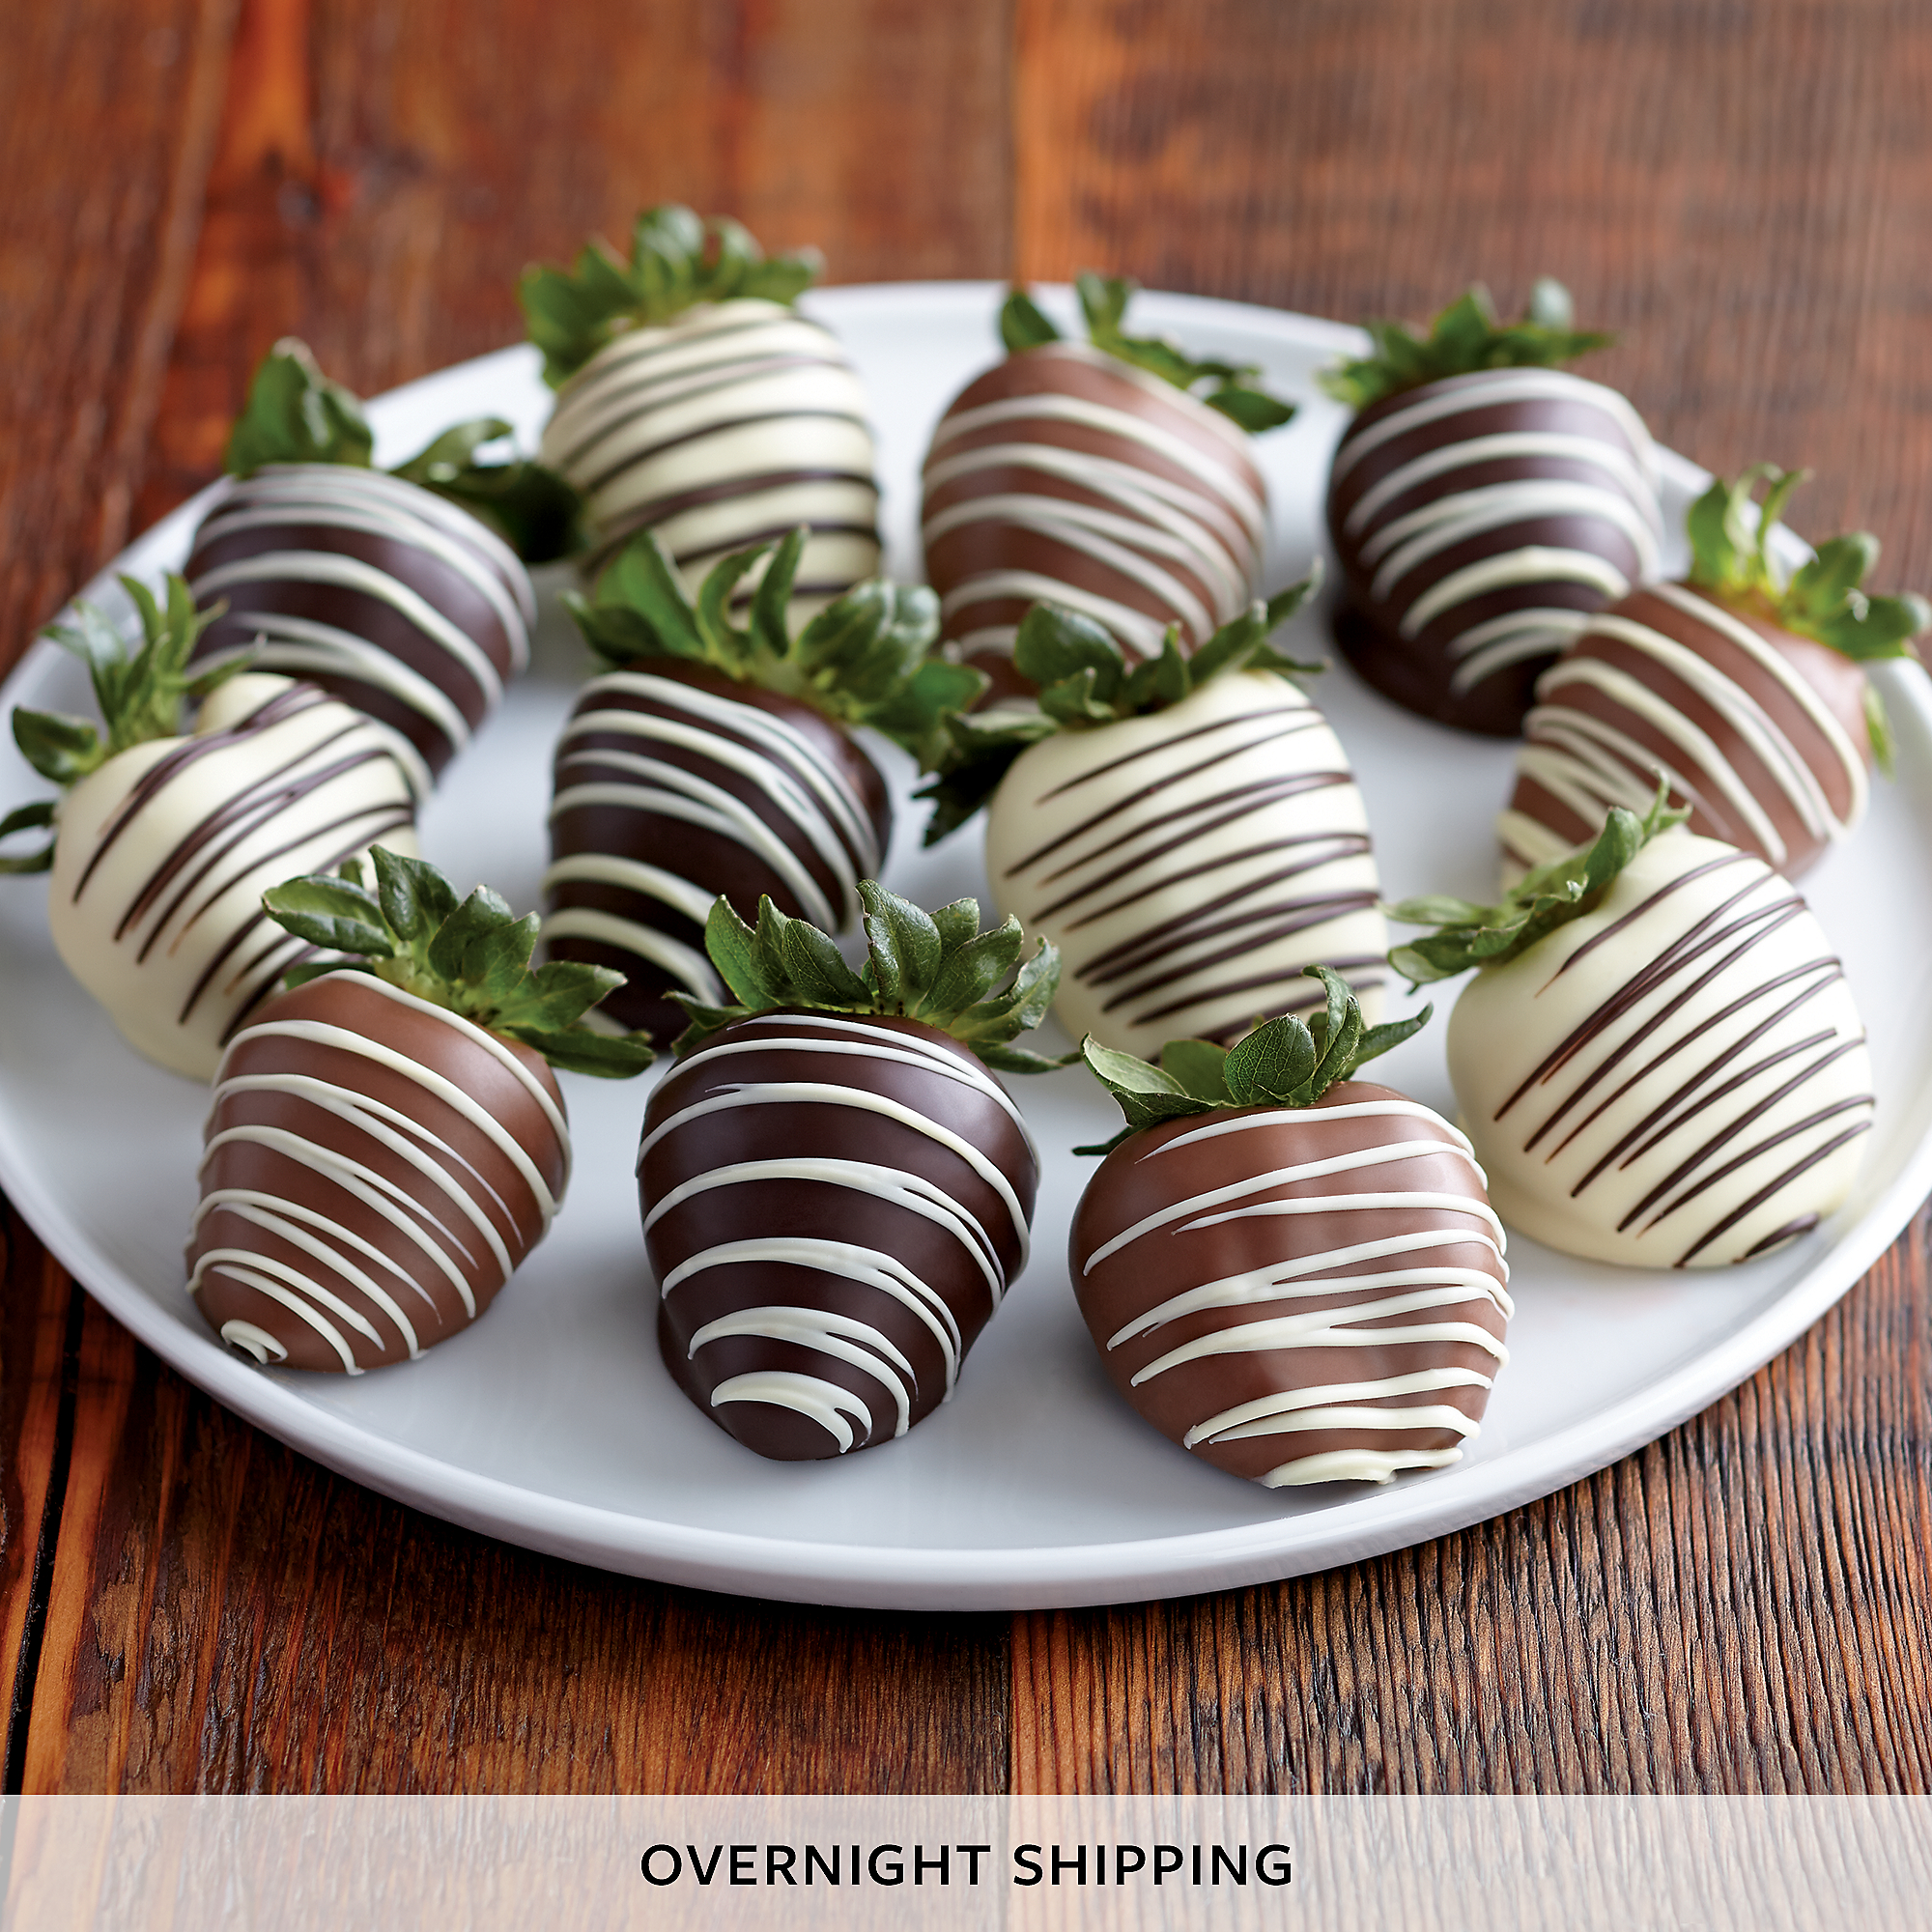 Double-Hand-Dipped Chocolate-Covered Strawberry Medley | Fruit Gifts